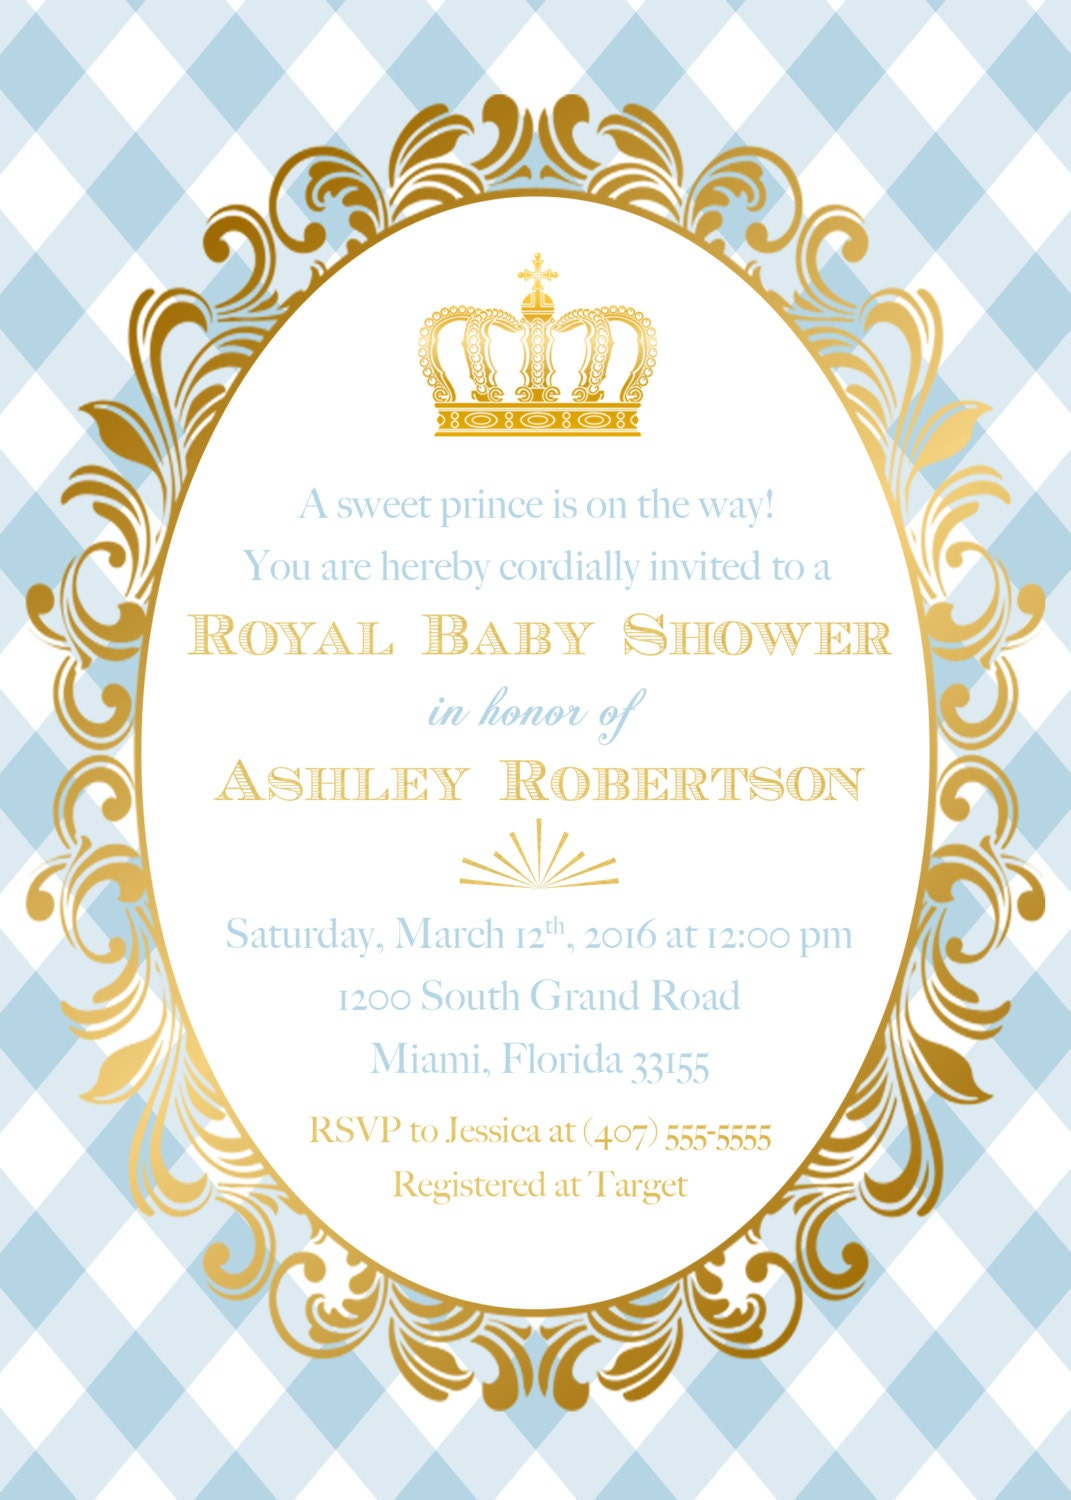 Prince baby shower invitation royal baby shower gold foil crown prince baby shower invitation royal baby shower gold foil crown royal baby boy invite light blue prince printable invitation filmwisefo